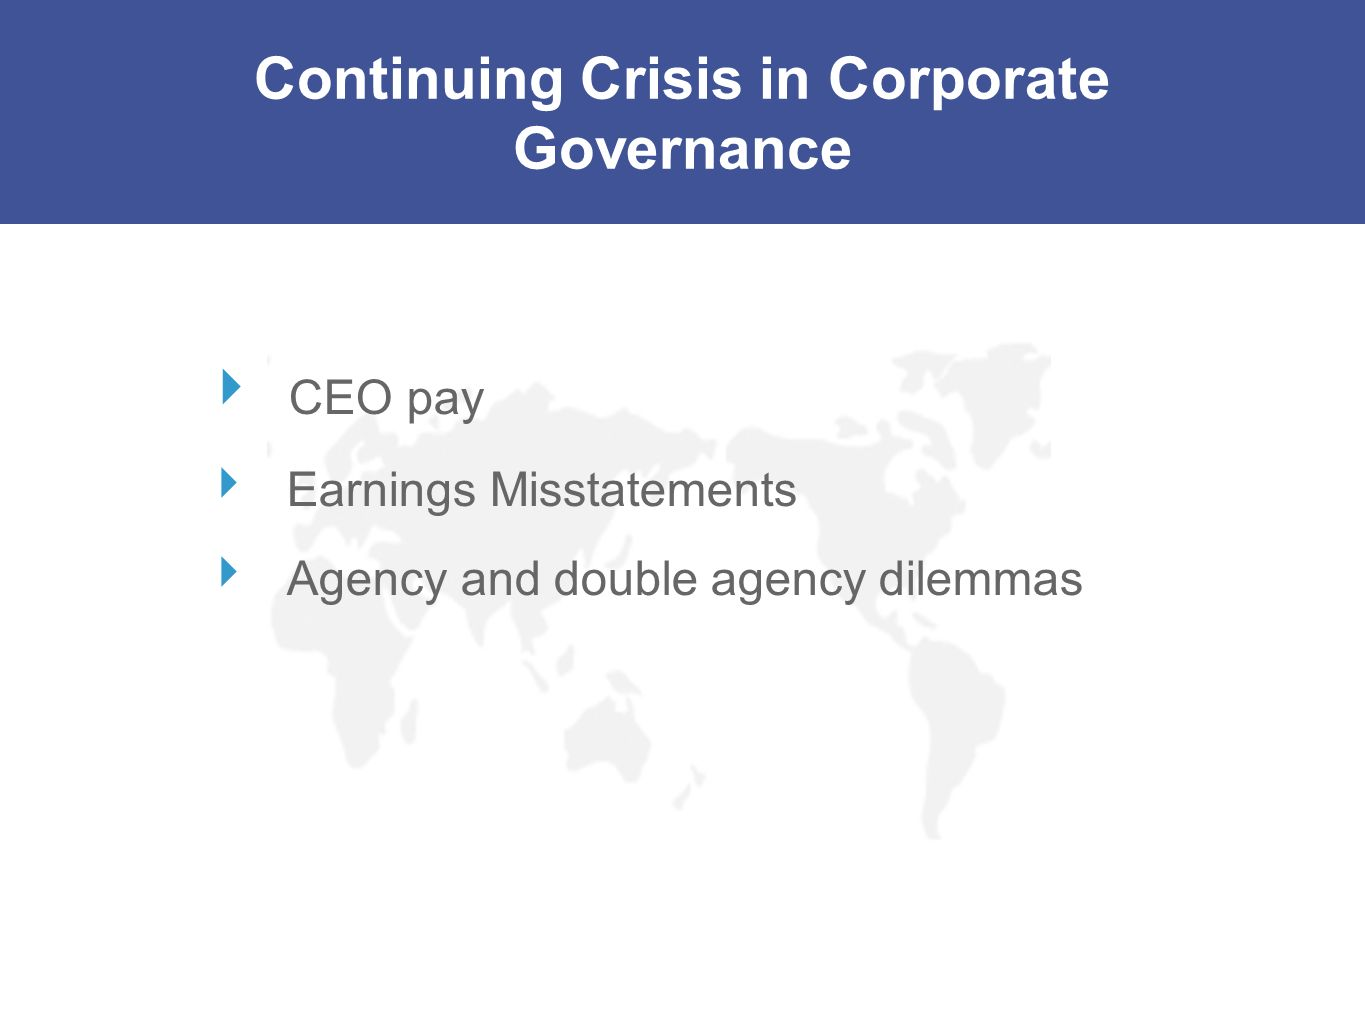 Continuing Crisis in Corporate Governance